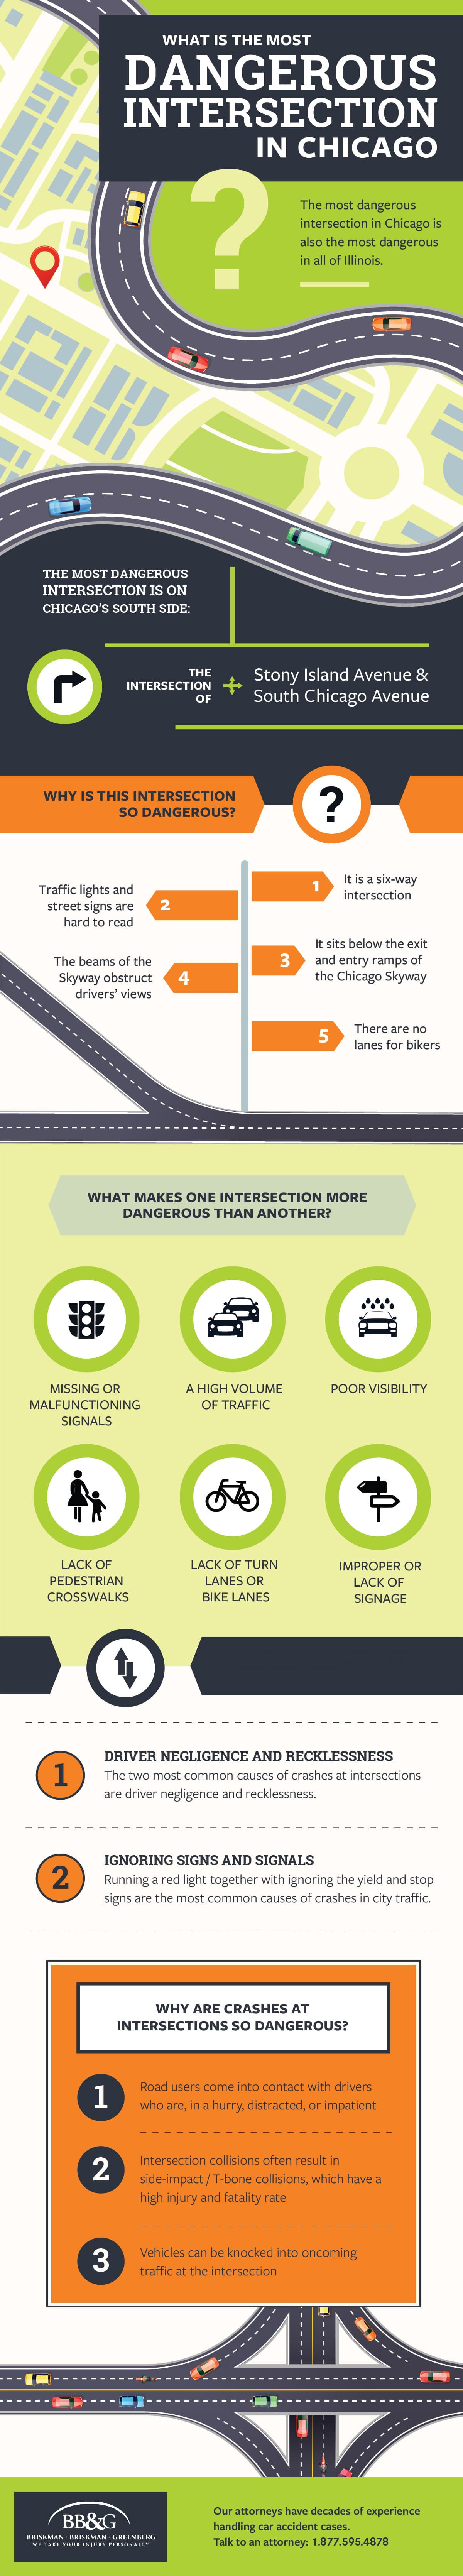 Dangerous Intersections in Chicago